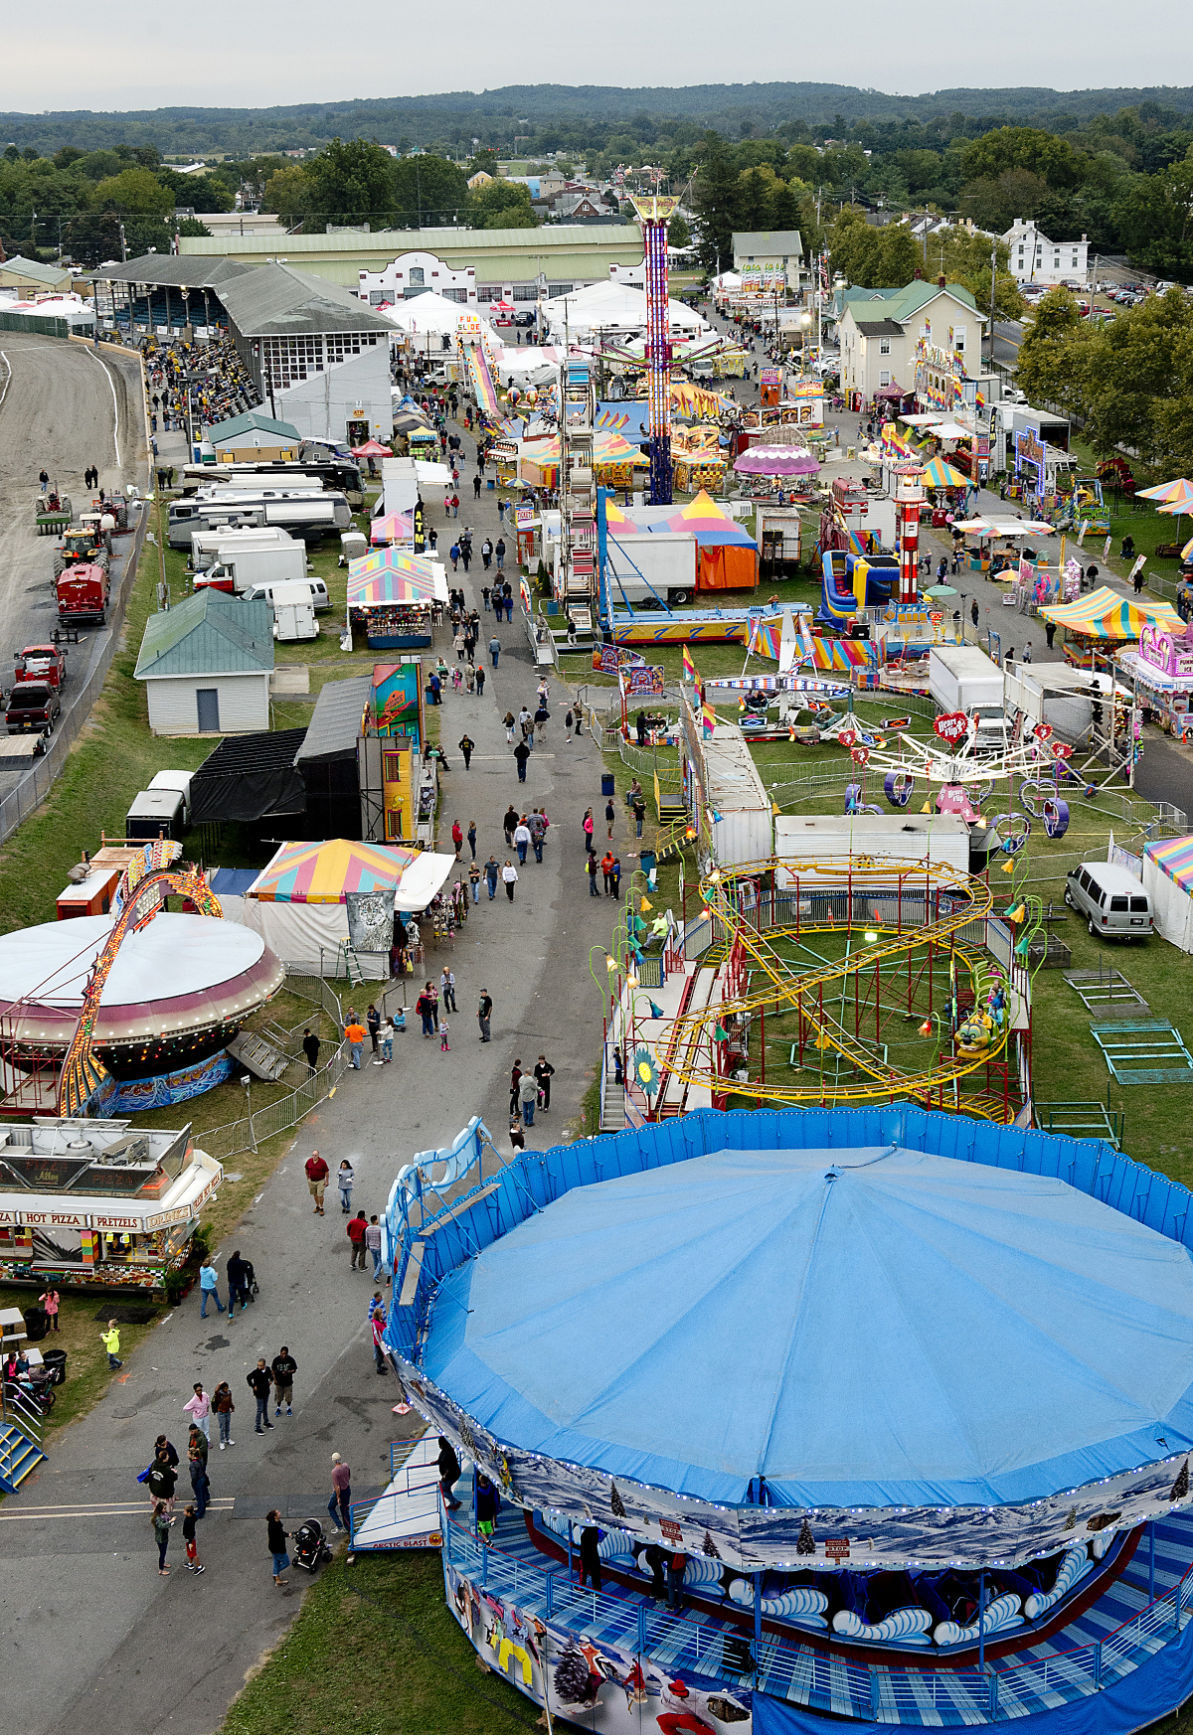 Fair View from above